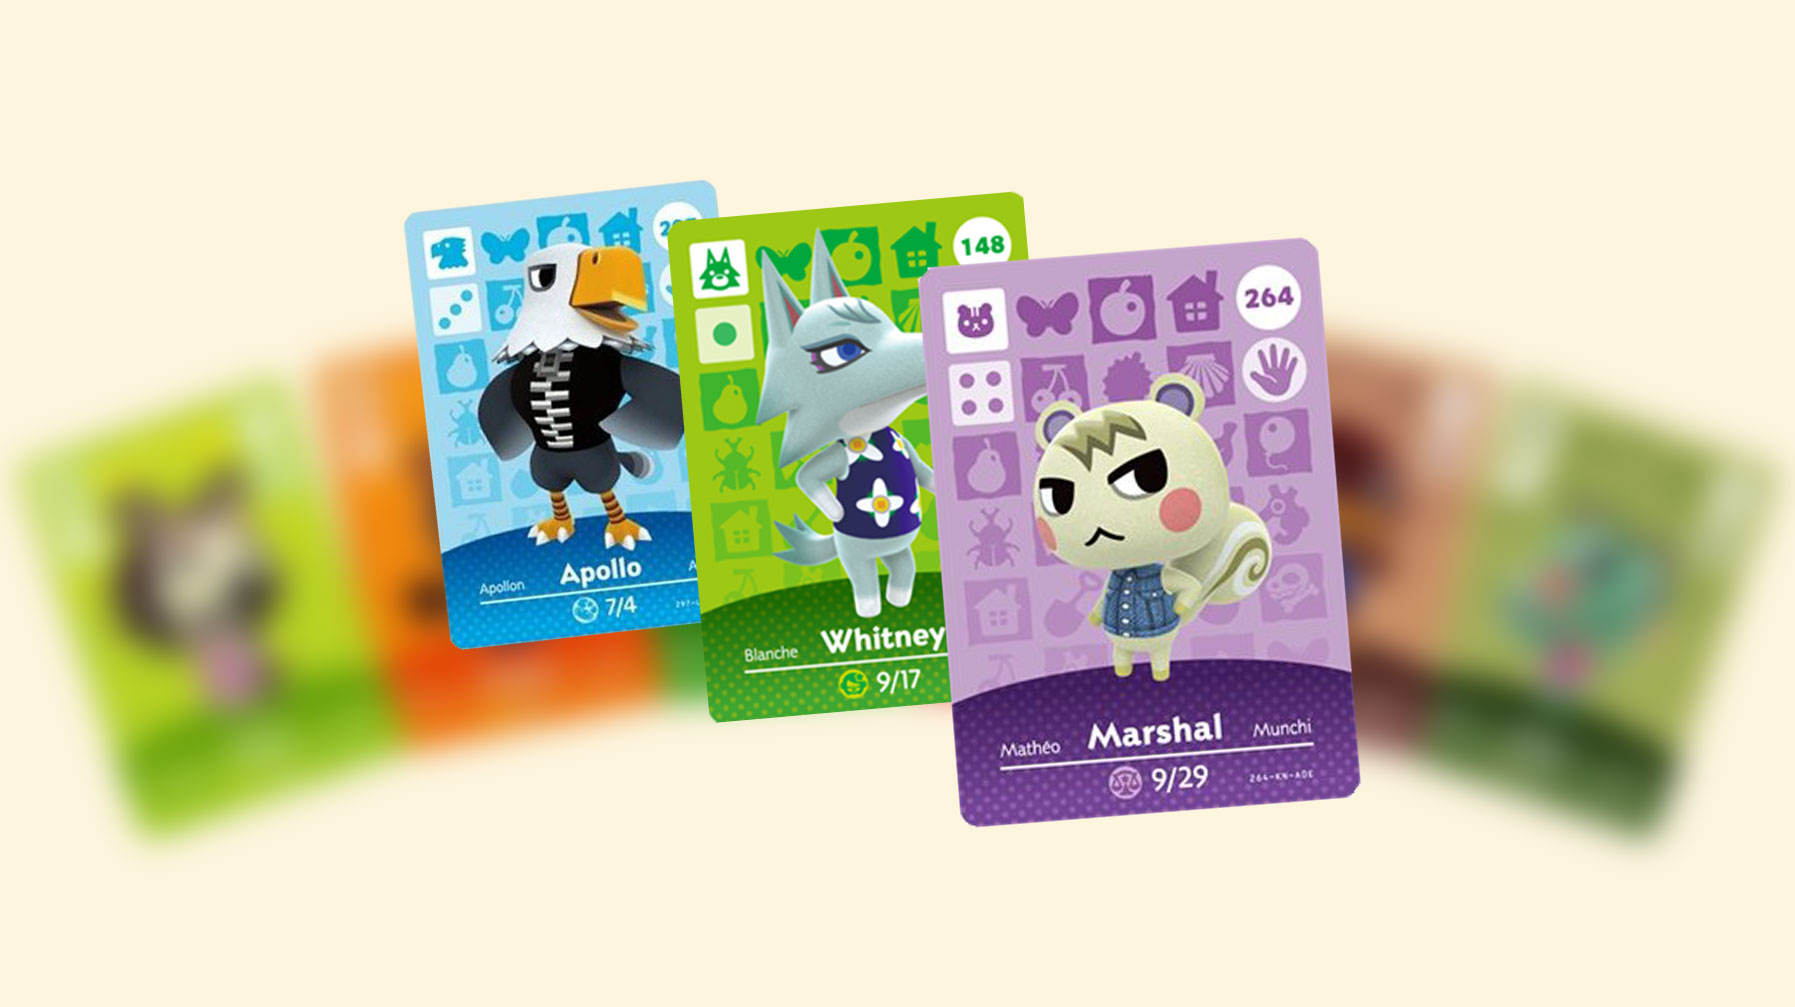 People on eBay are asking insane prices for these Animal Crossing amiibo cards screenshot